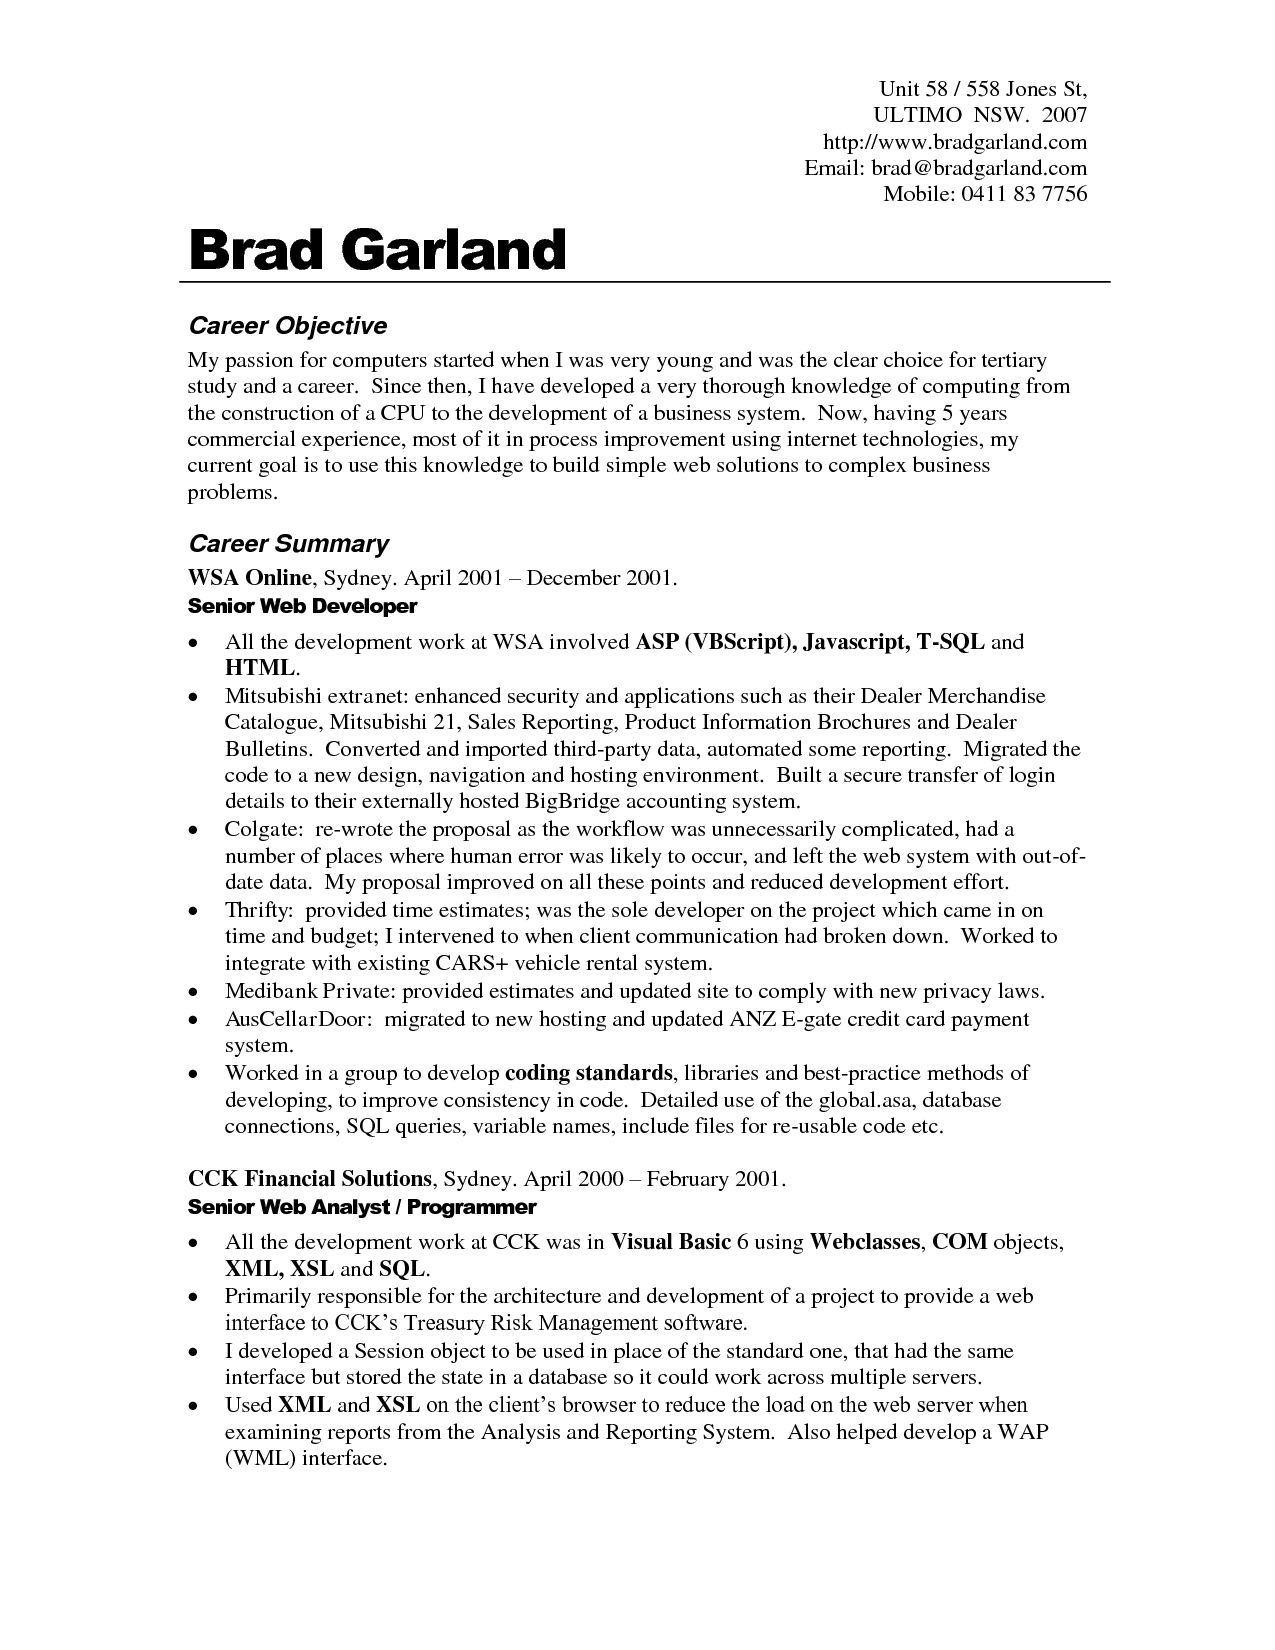 Samples Of Objectives For A Resume Entrancing Resume Examples Job Objective  Sample Resume Entry Level And .